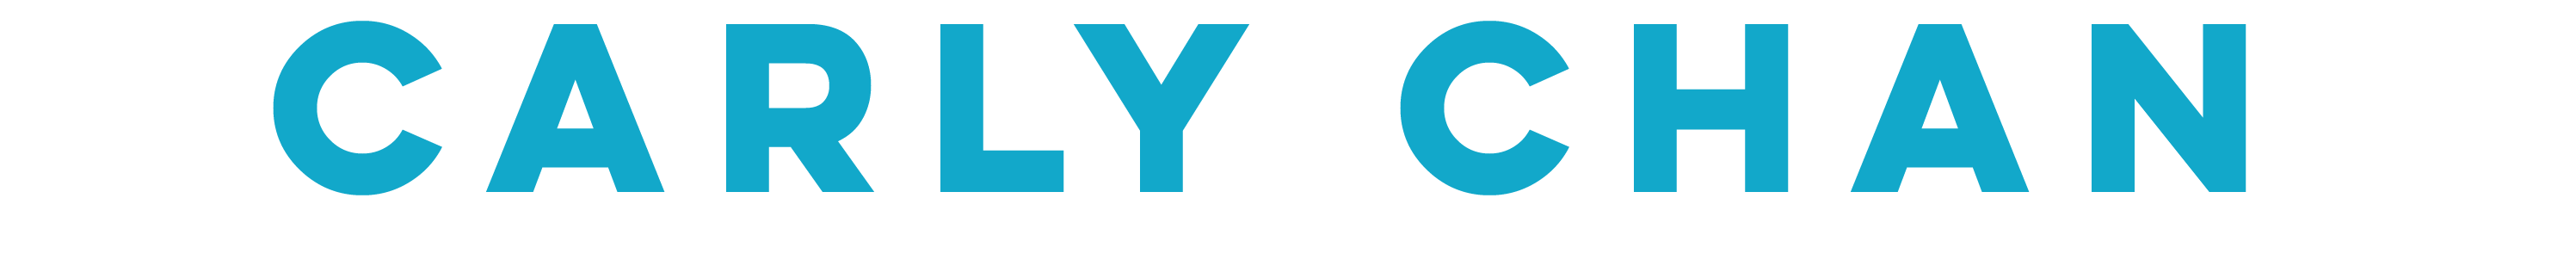 "Wordmark: The name ""Carly Chan"" written in blue, all-caps sans serif text."